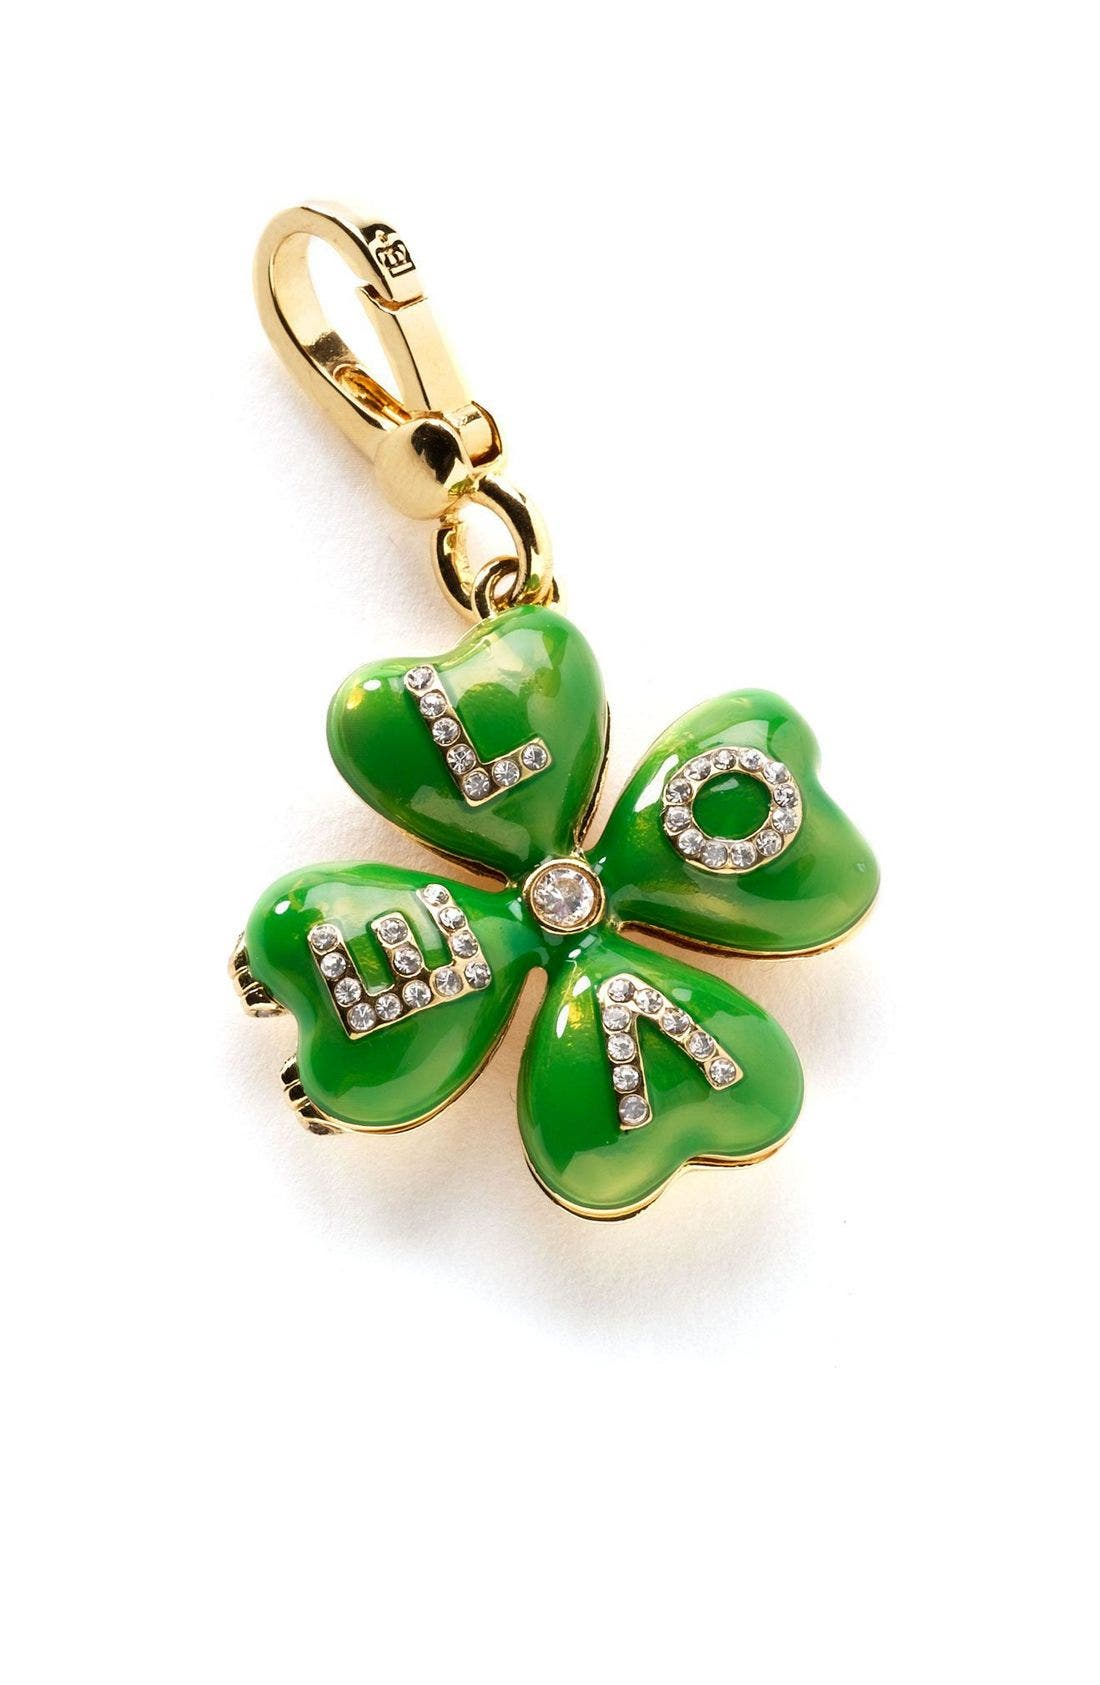 Main Image - Juicy Couture Clover Leaf Charm